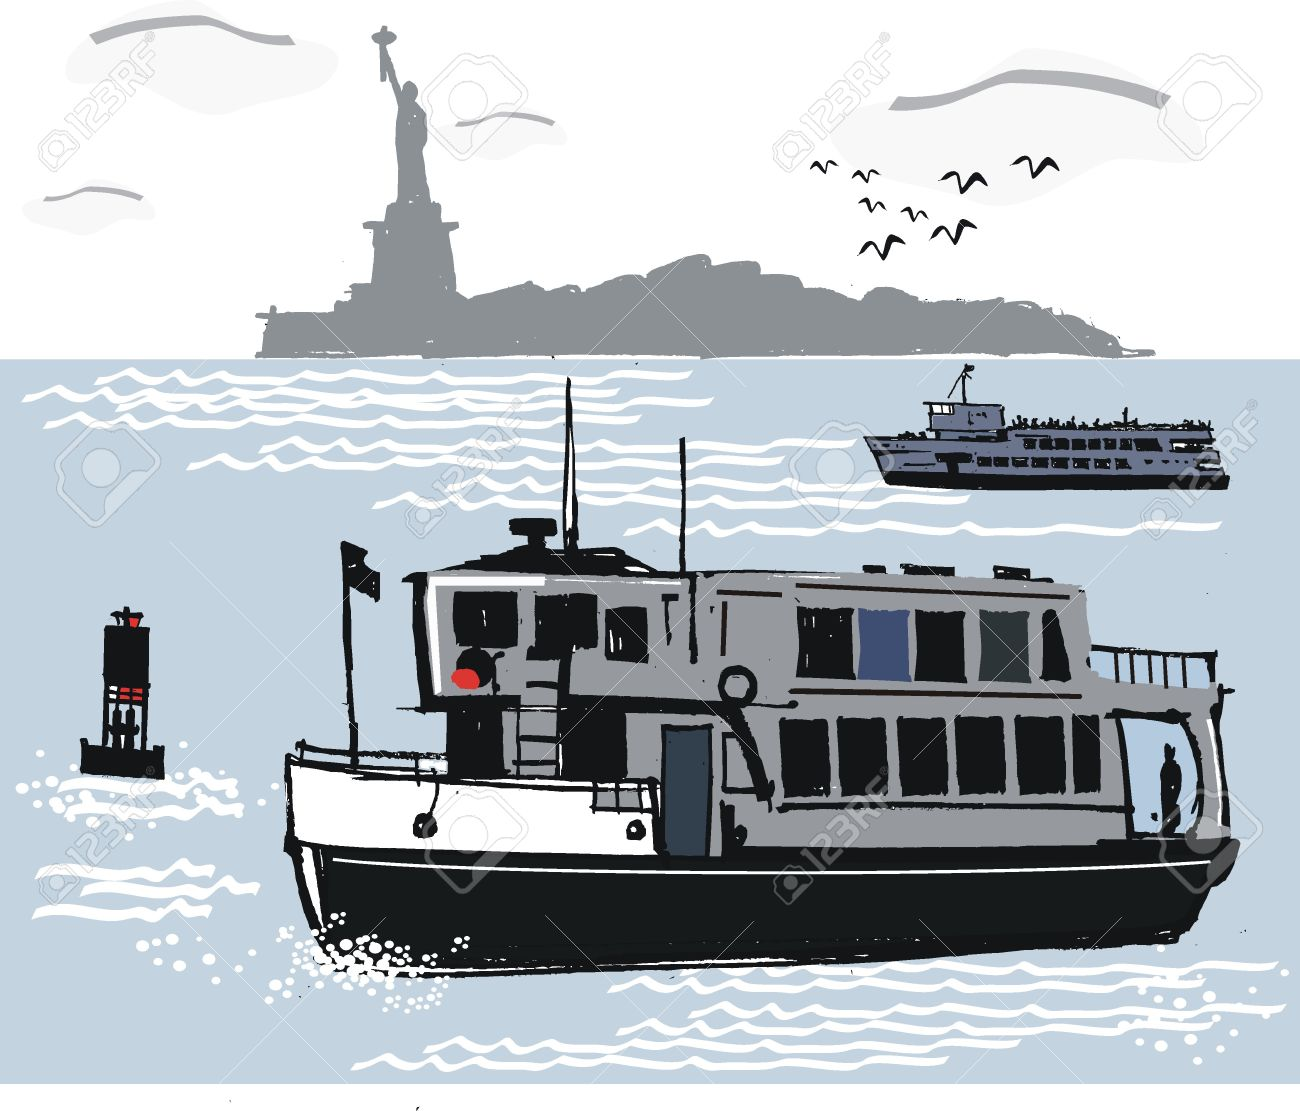 New York Ferry Illustration Royalty Free Cliparts, Vectors, And.